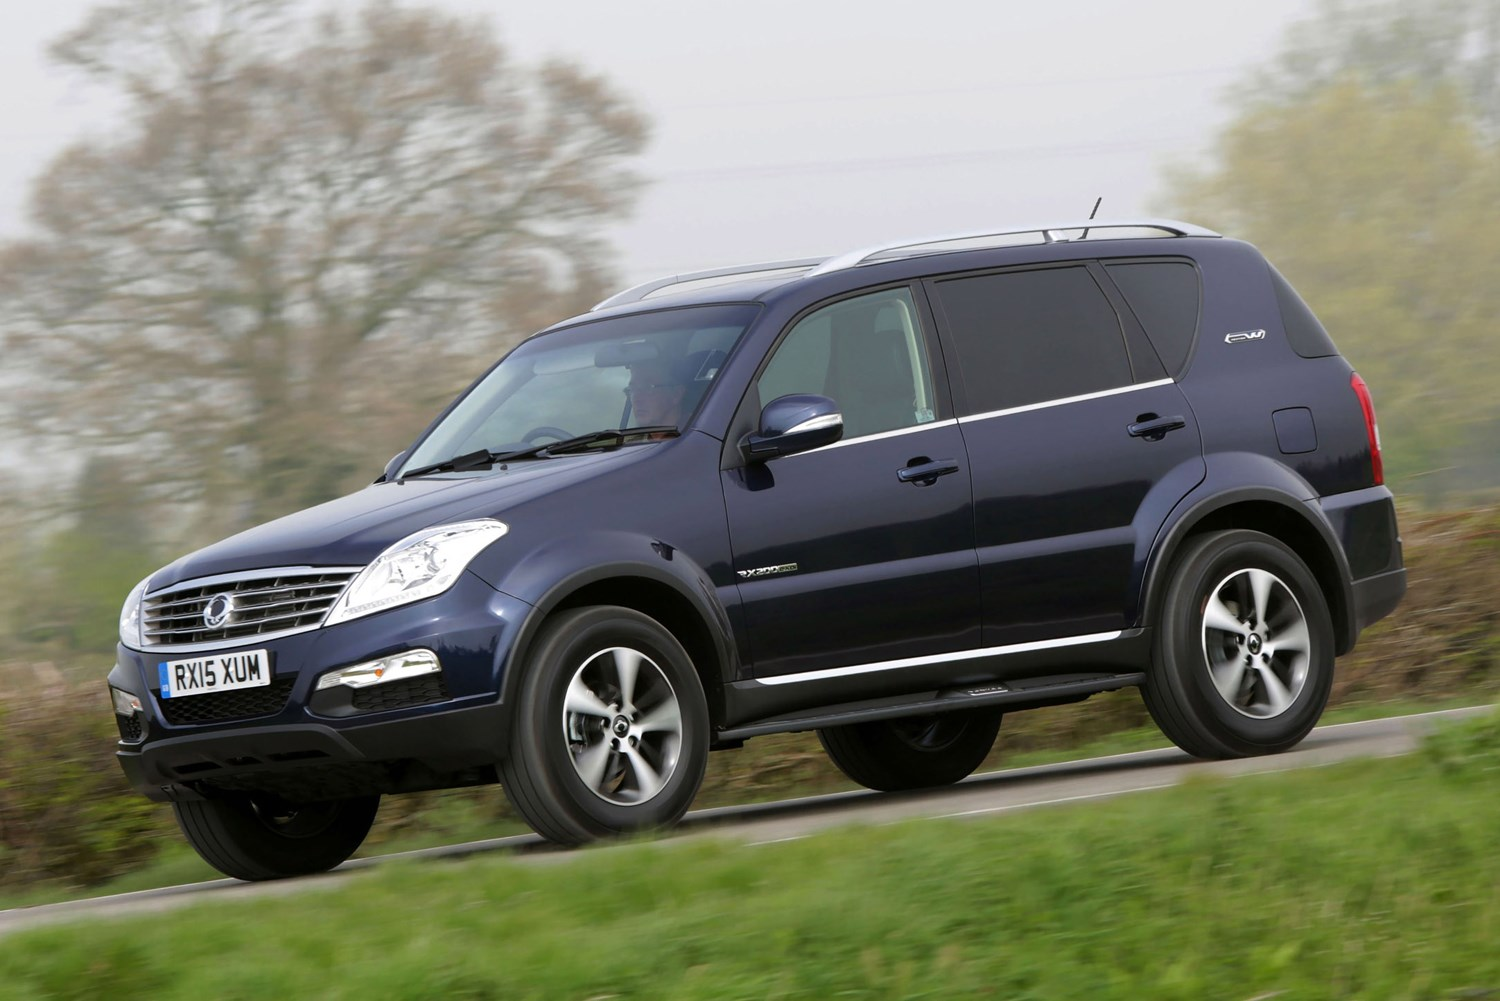 ssangyong rexton w estate 2014 2016 running costs parkers. Black Bedroom Furniture Sets. Home Design Ideas